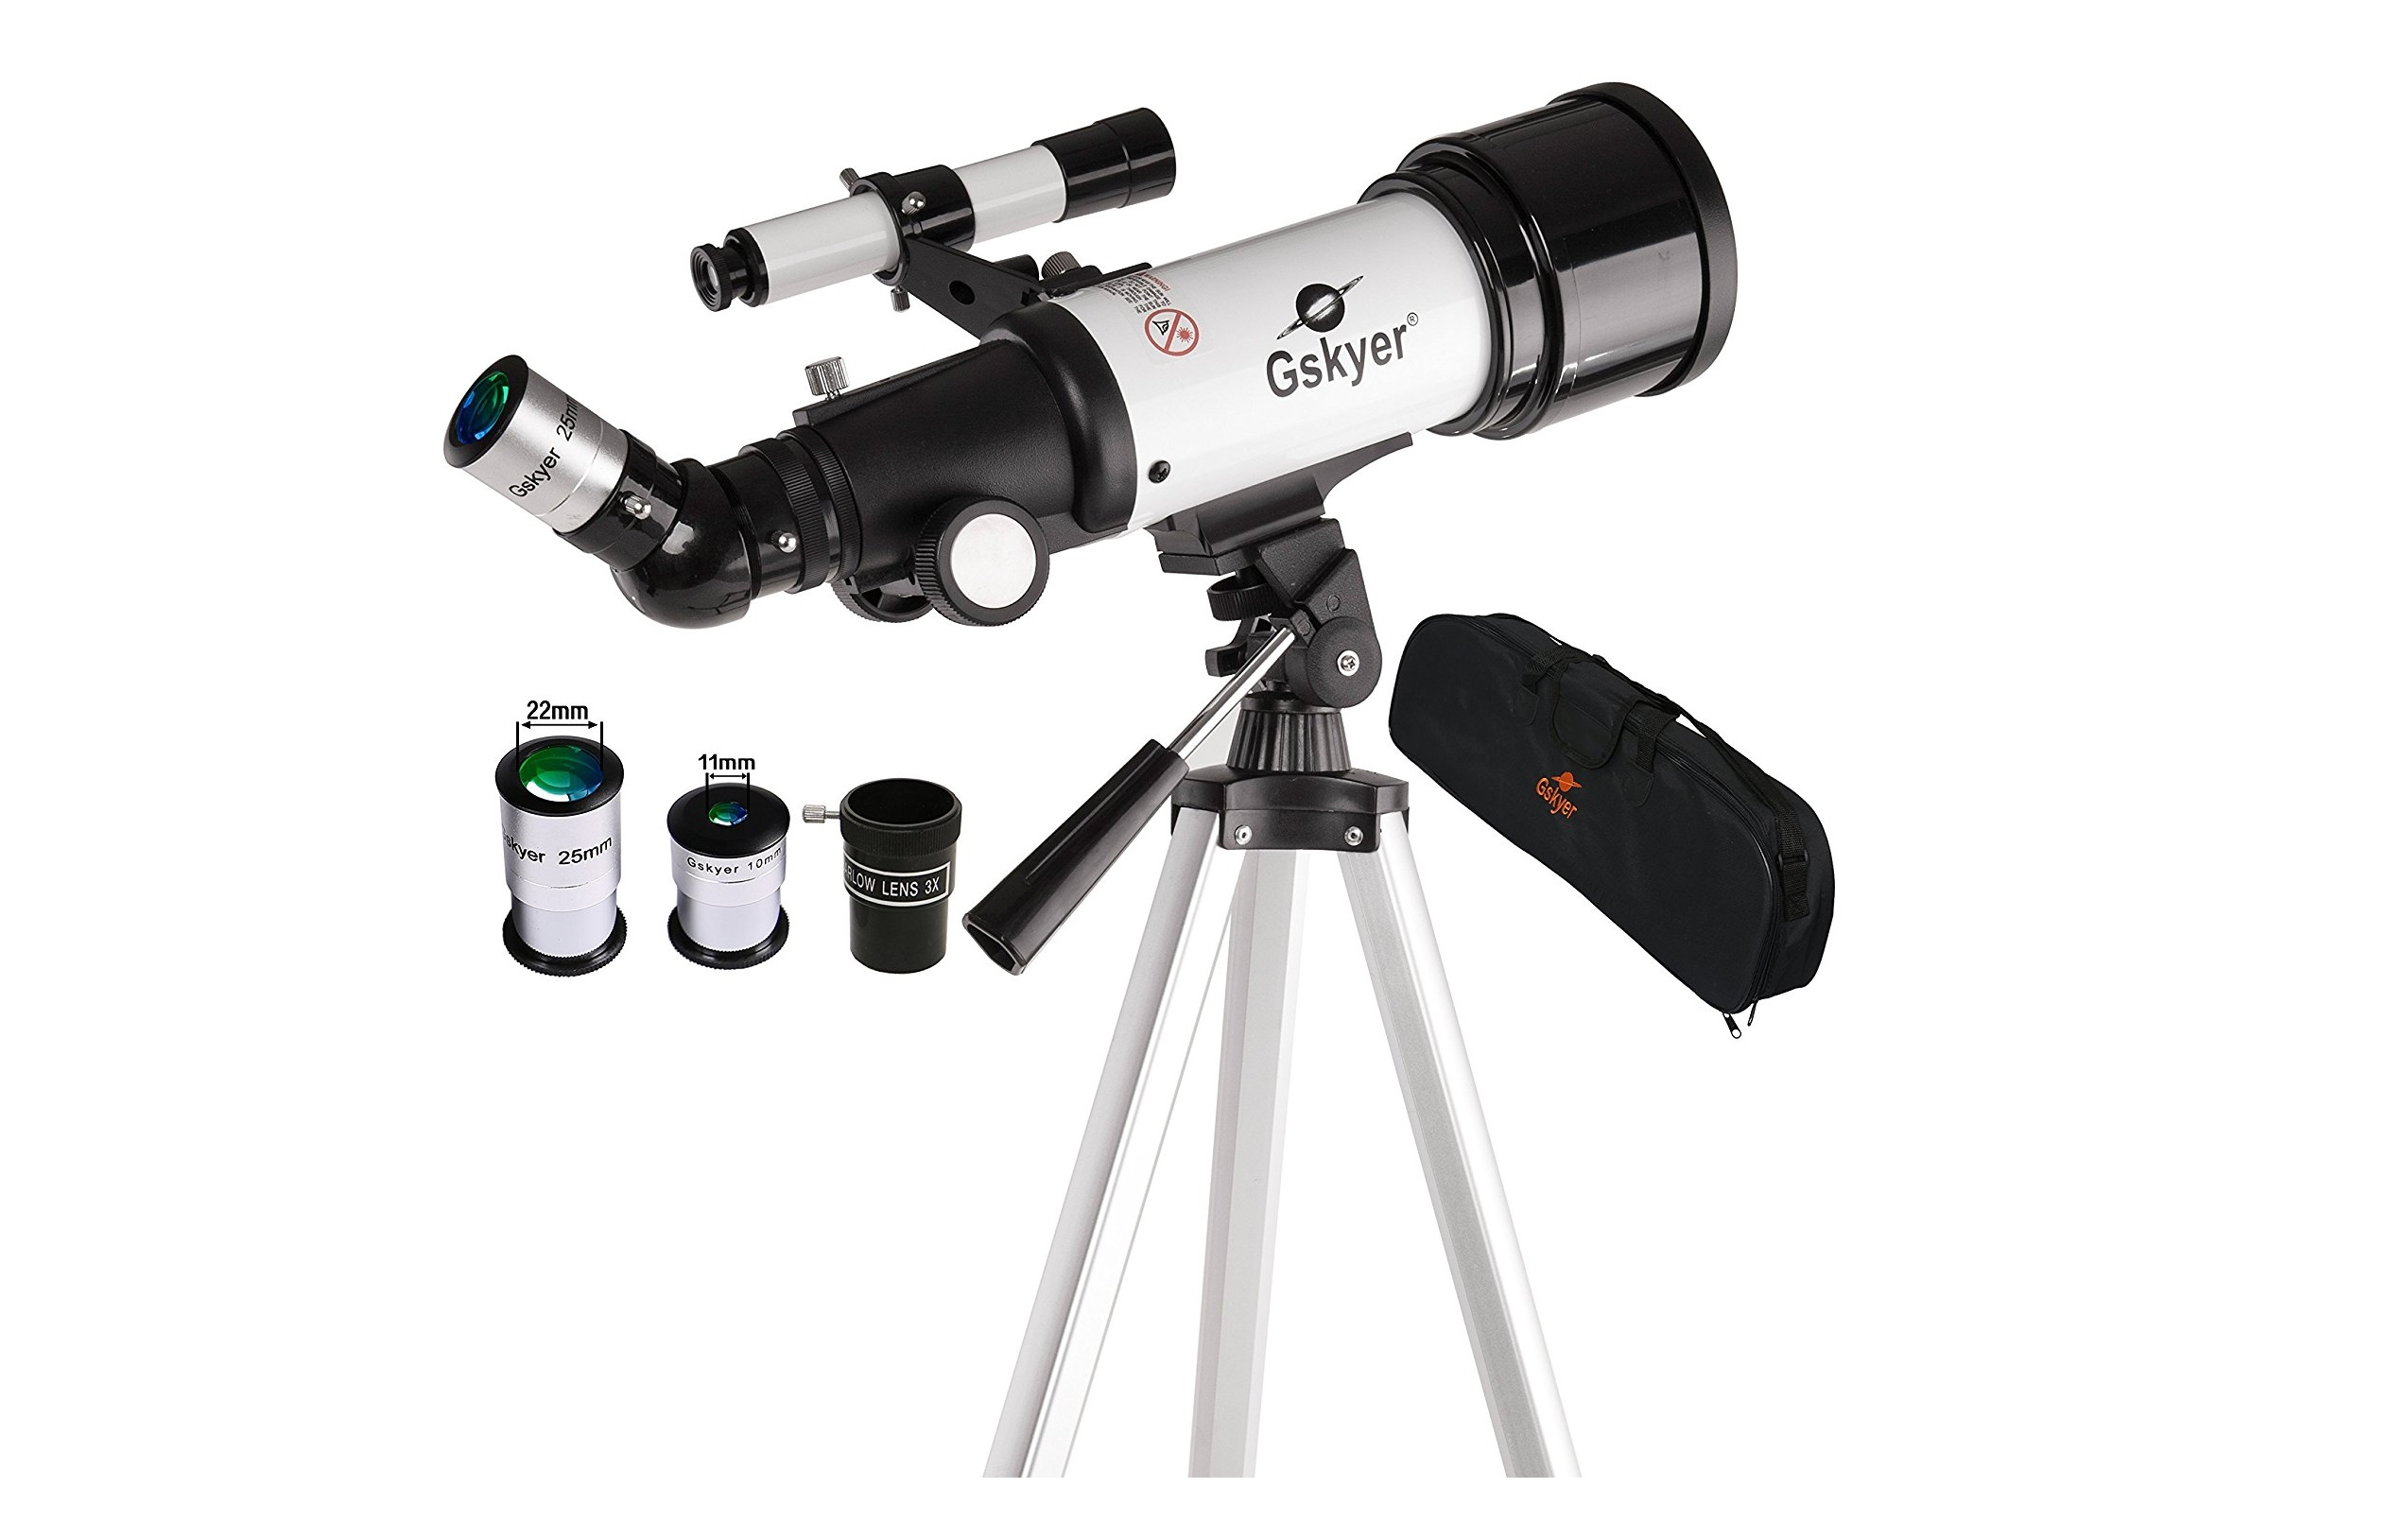 Top 10 Best Telescopes in 2018